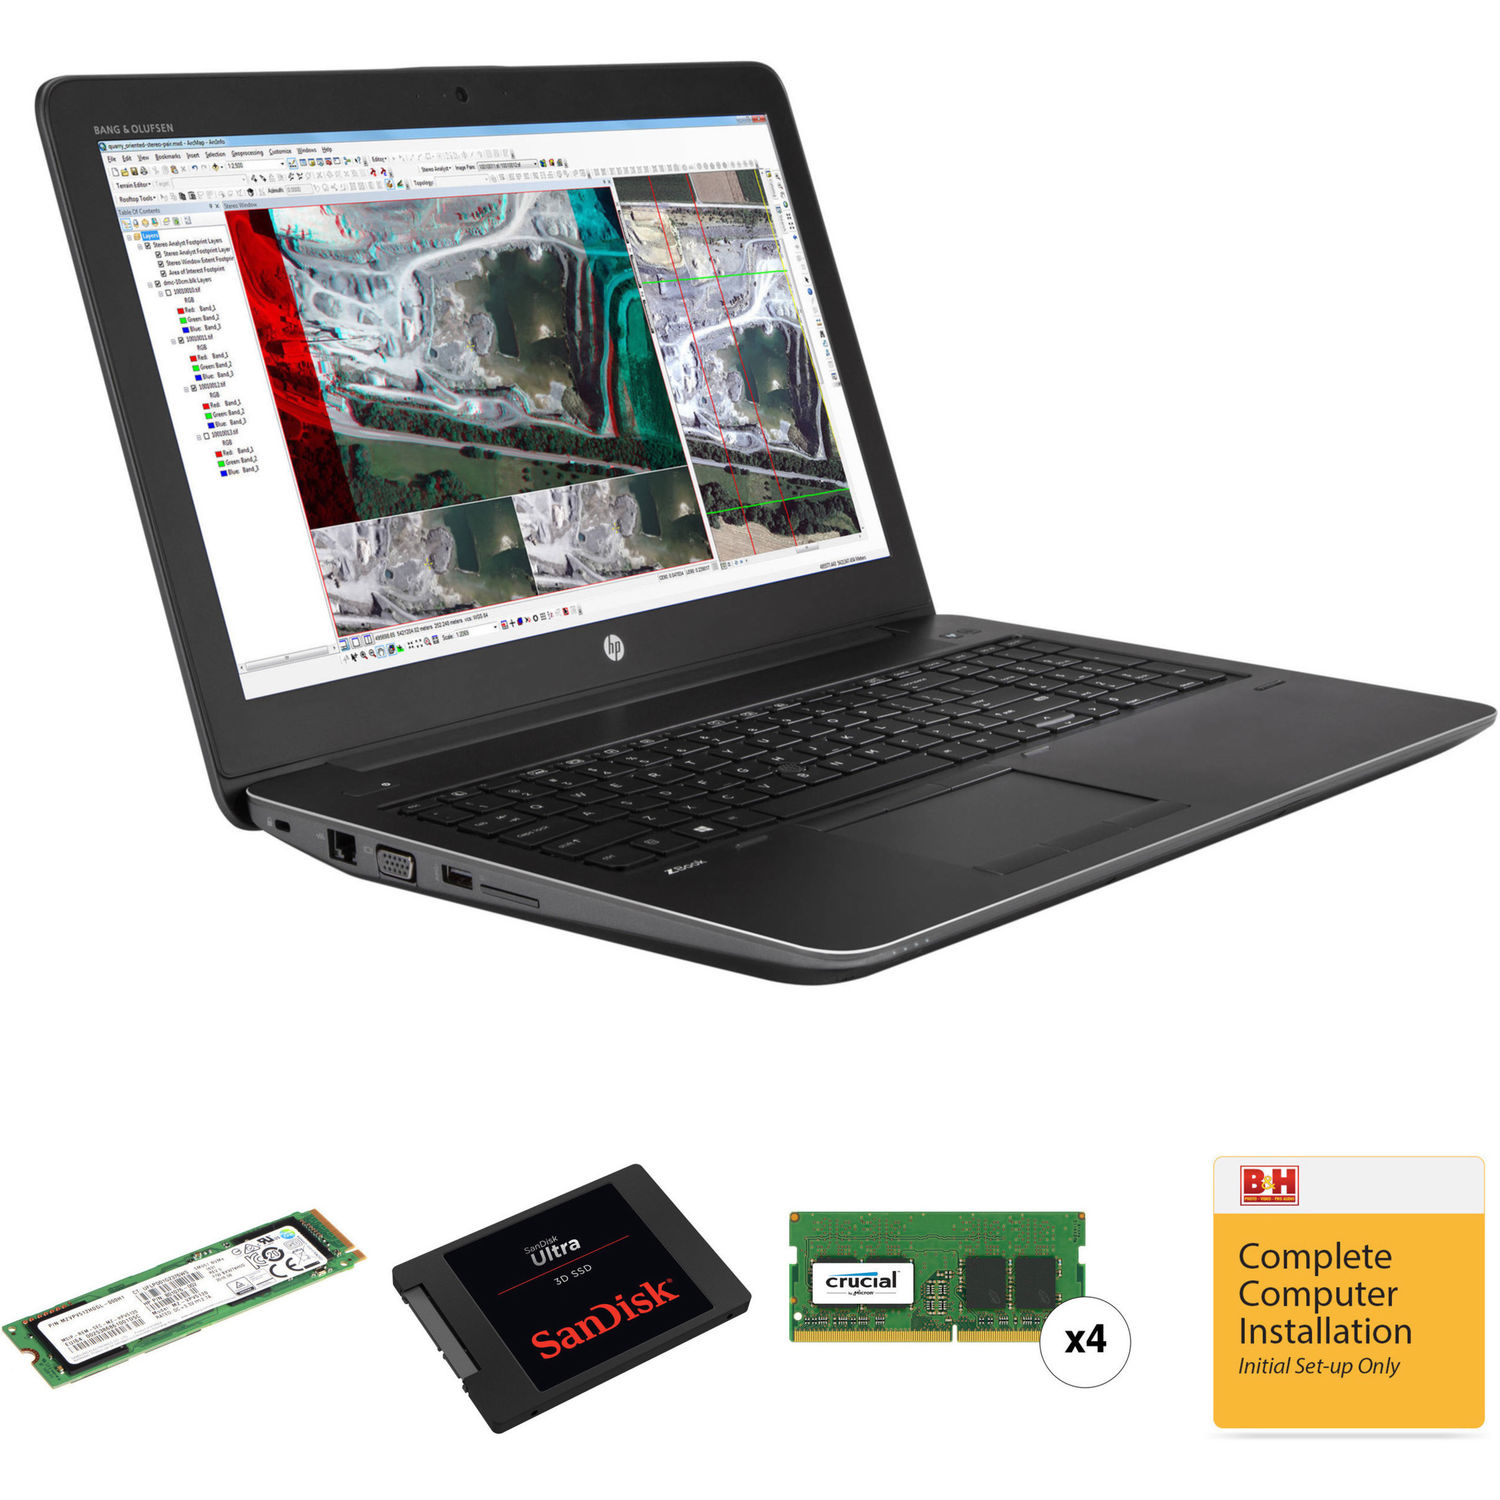 DATARAM 480GB 2.5 SSD Drive Solid State Drive Compatible with HP ZBOOK 15U G3